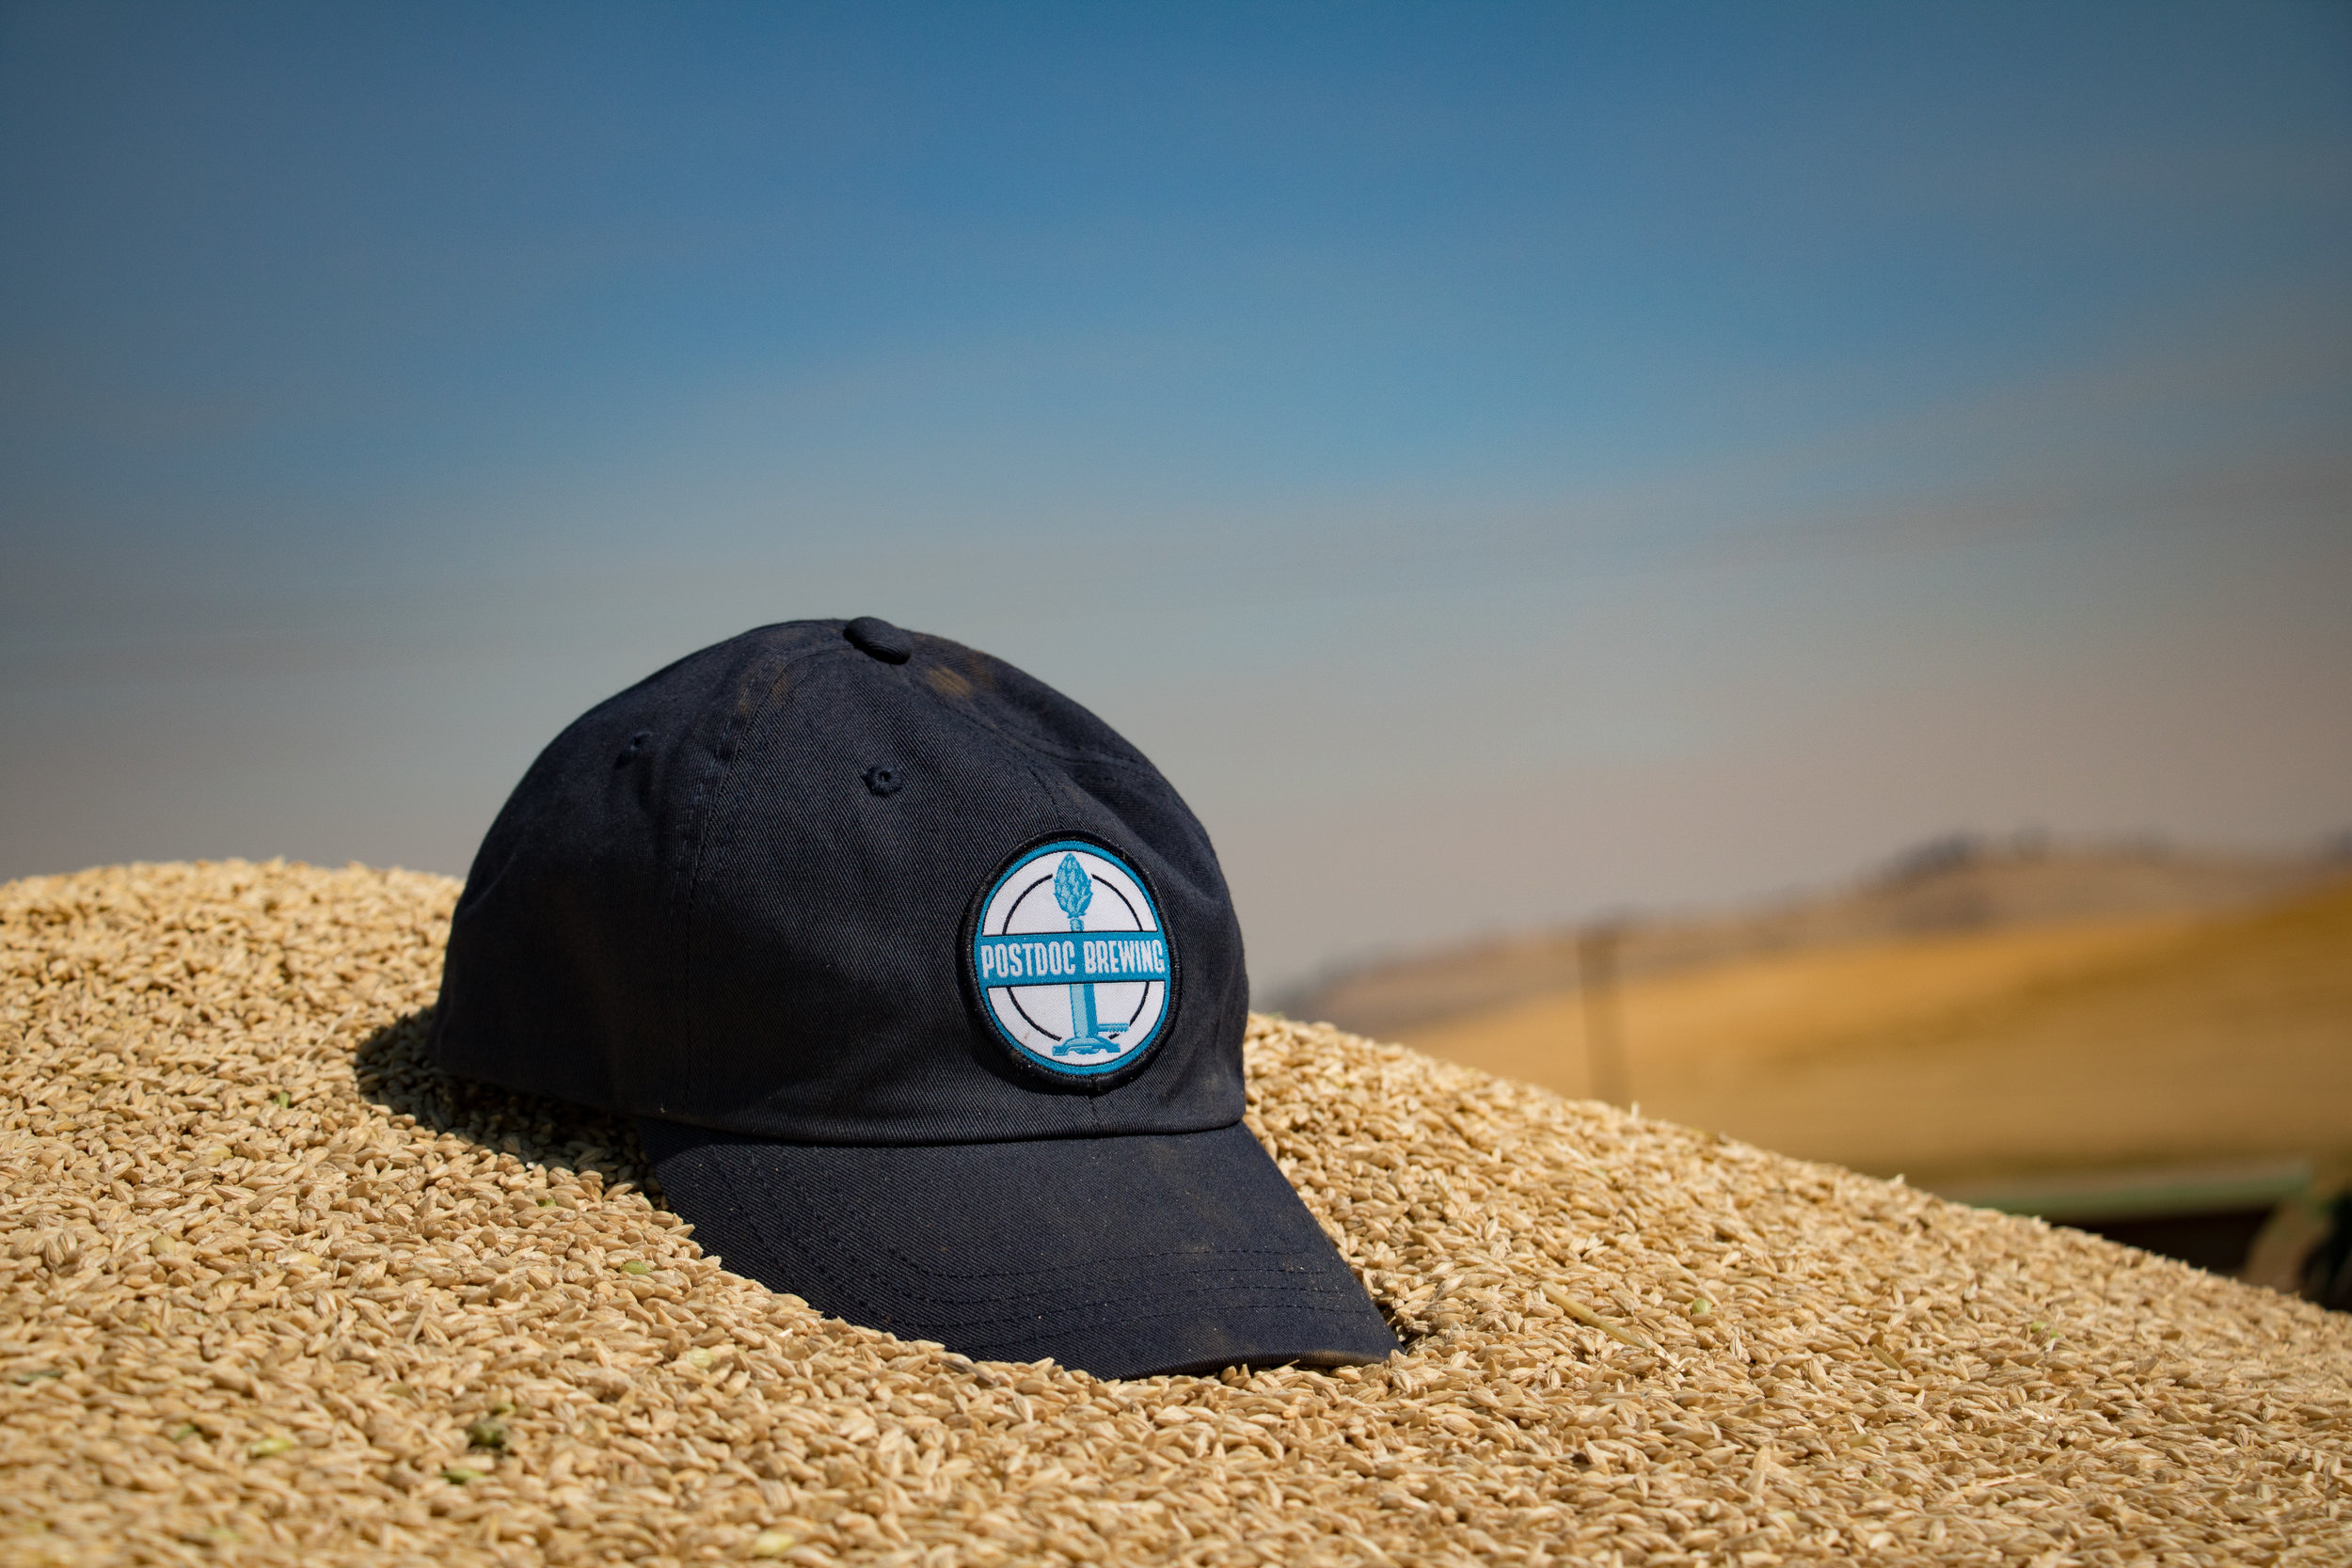 A Postdoc Brewing hat atop a pile of barley. Photo courtesy of Andrew Nelson.